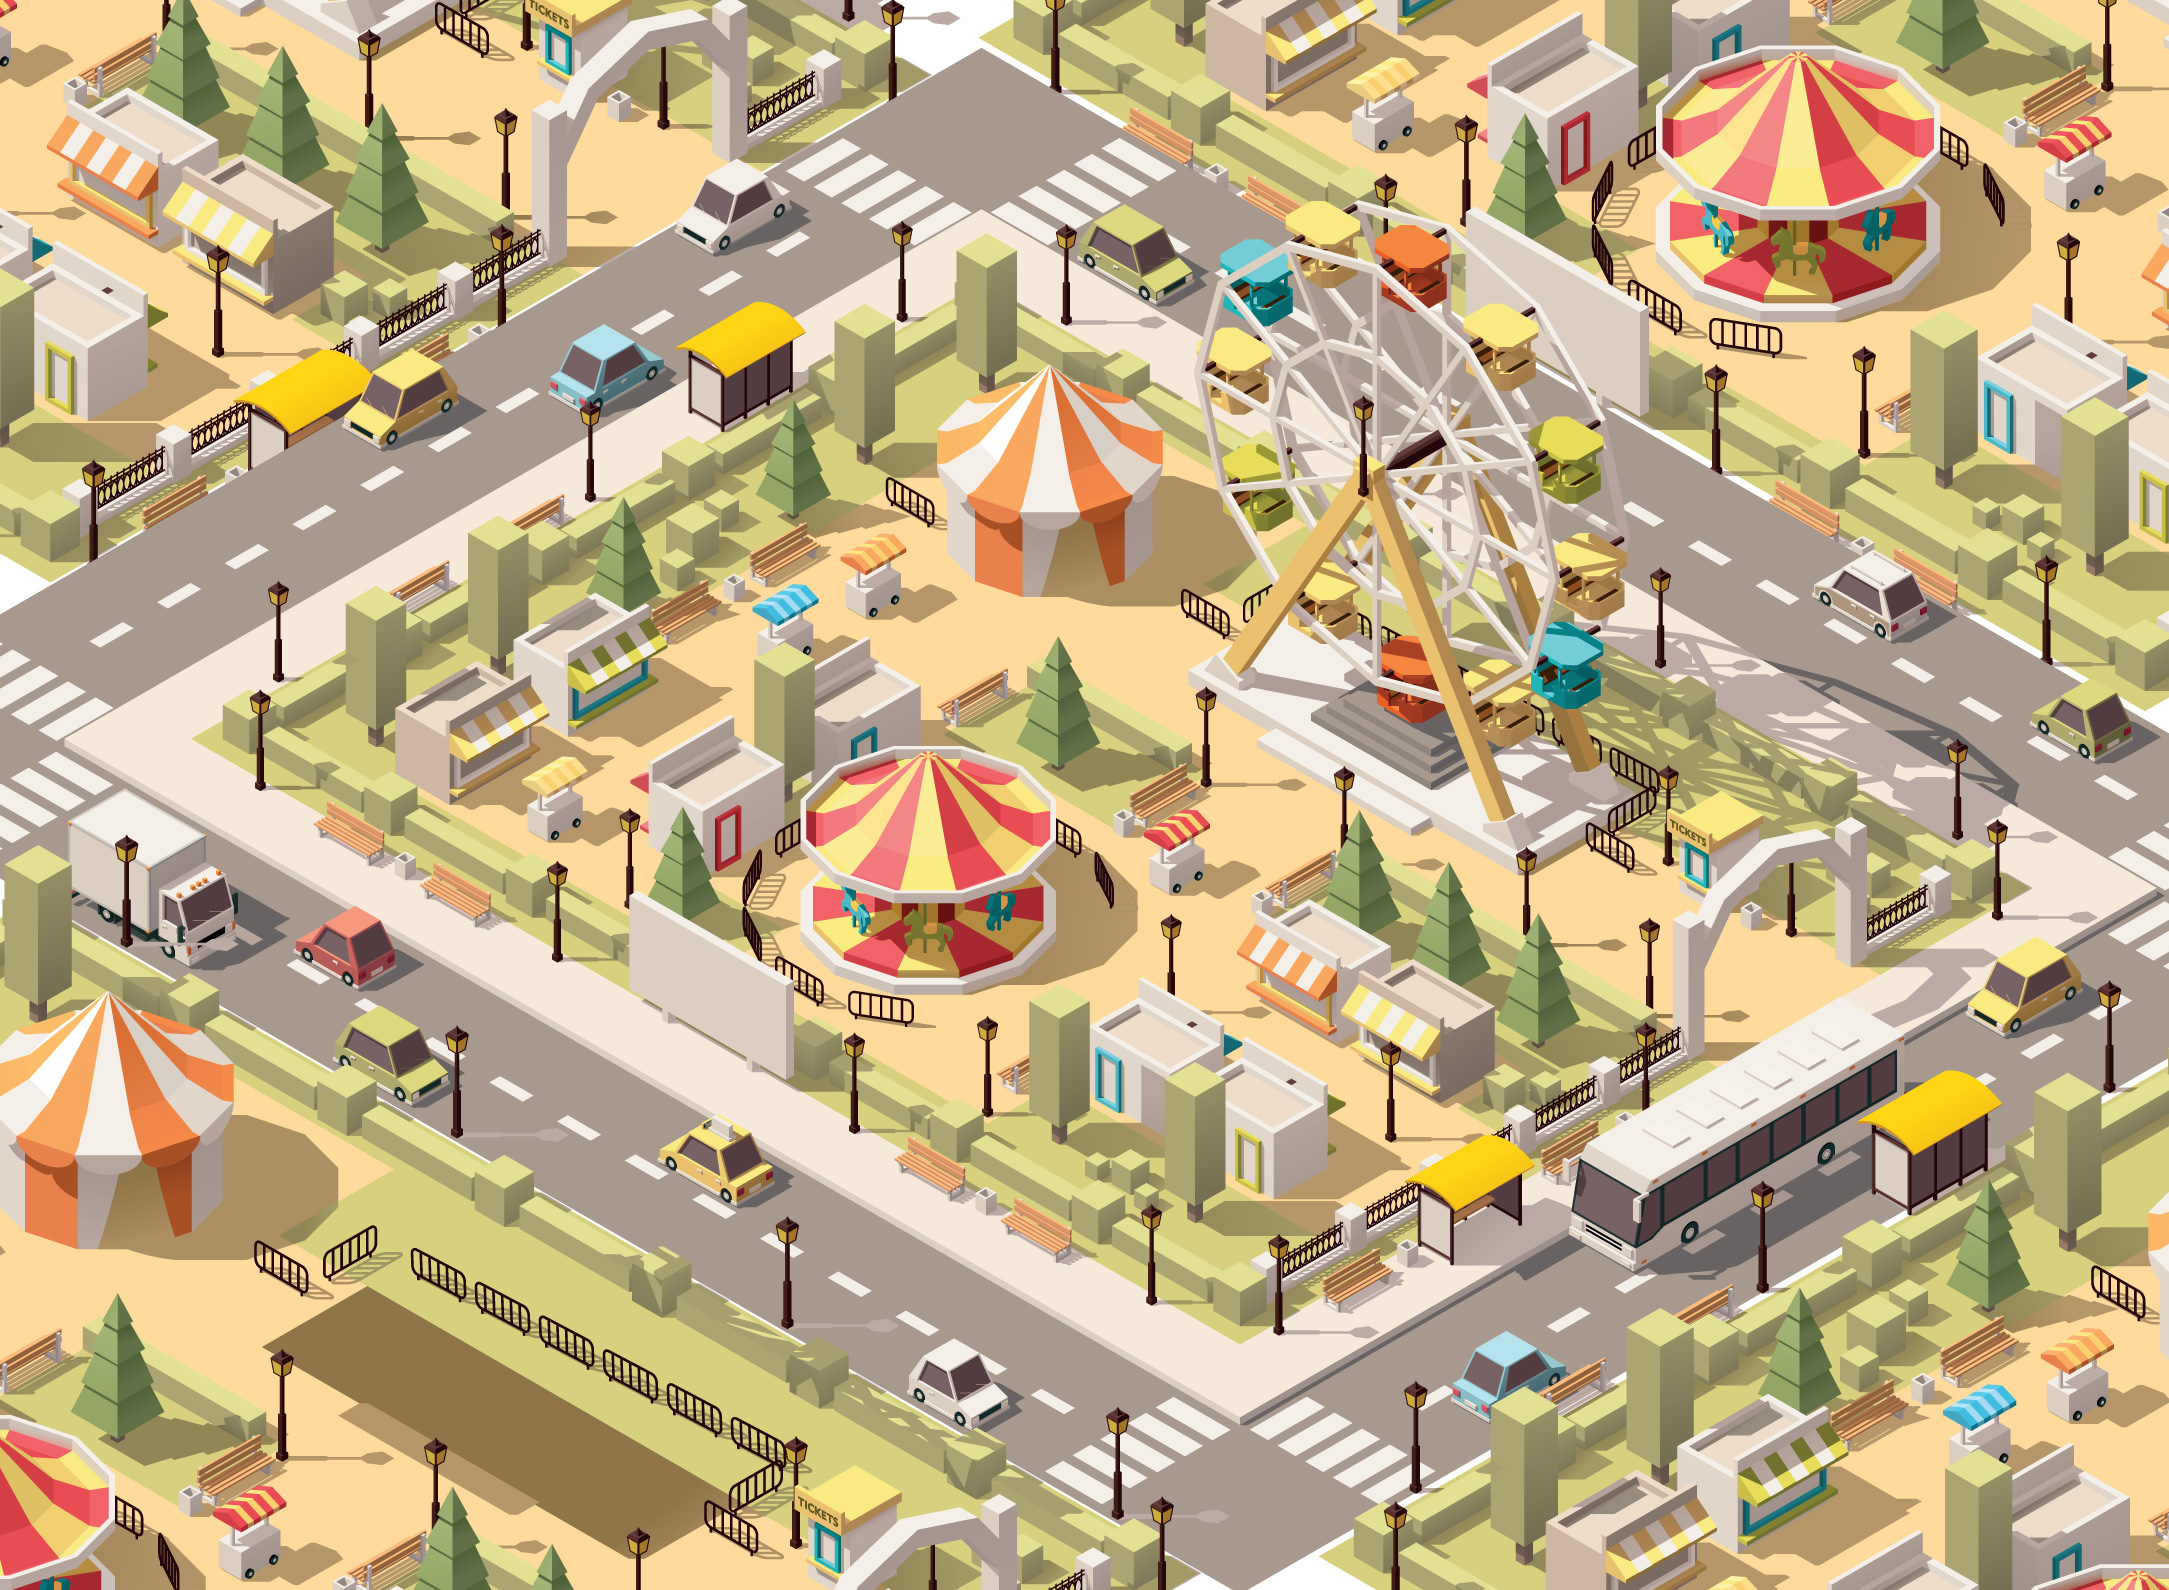 isometric-maps-fair.jpg